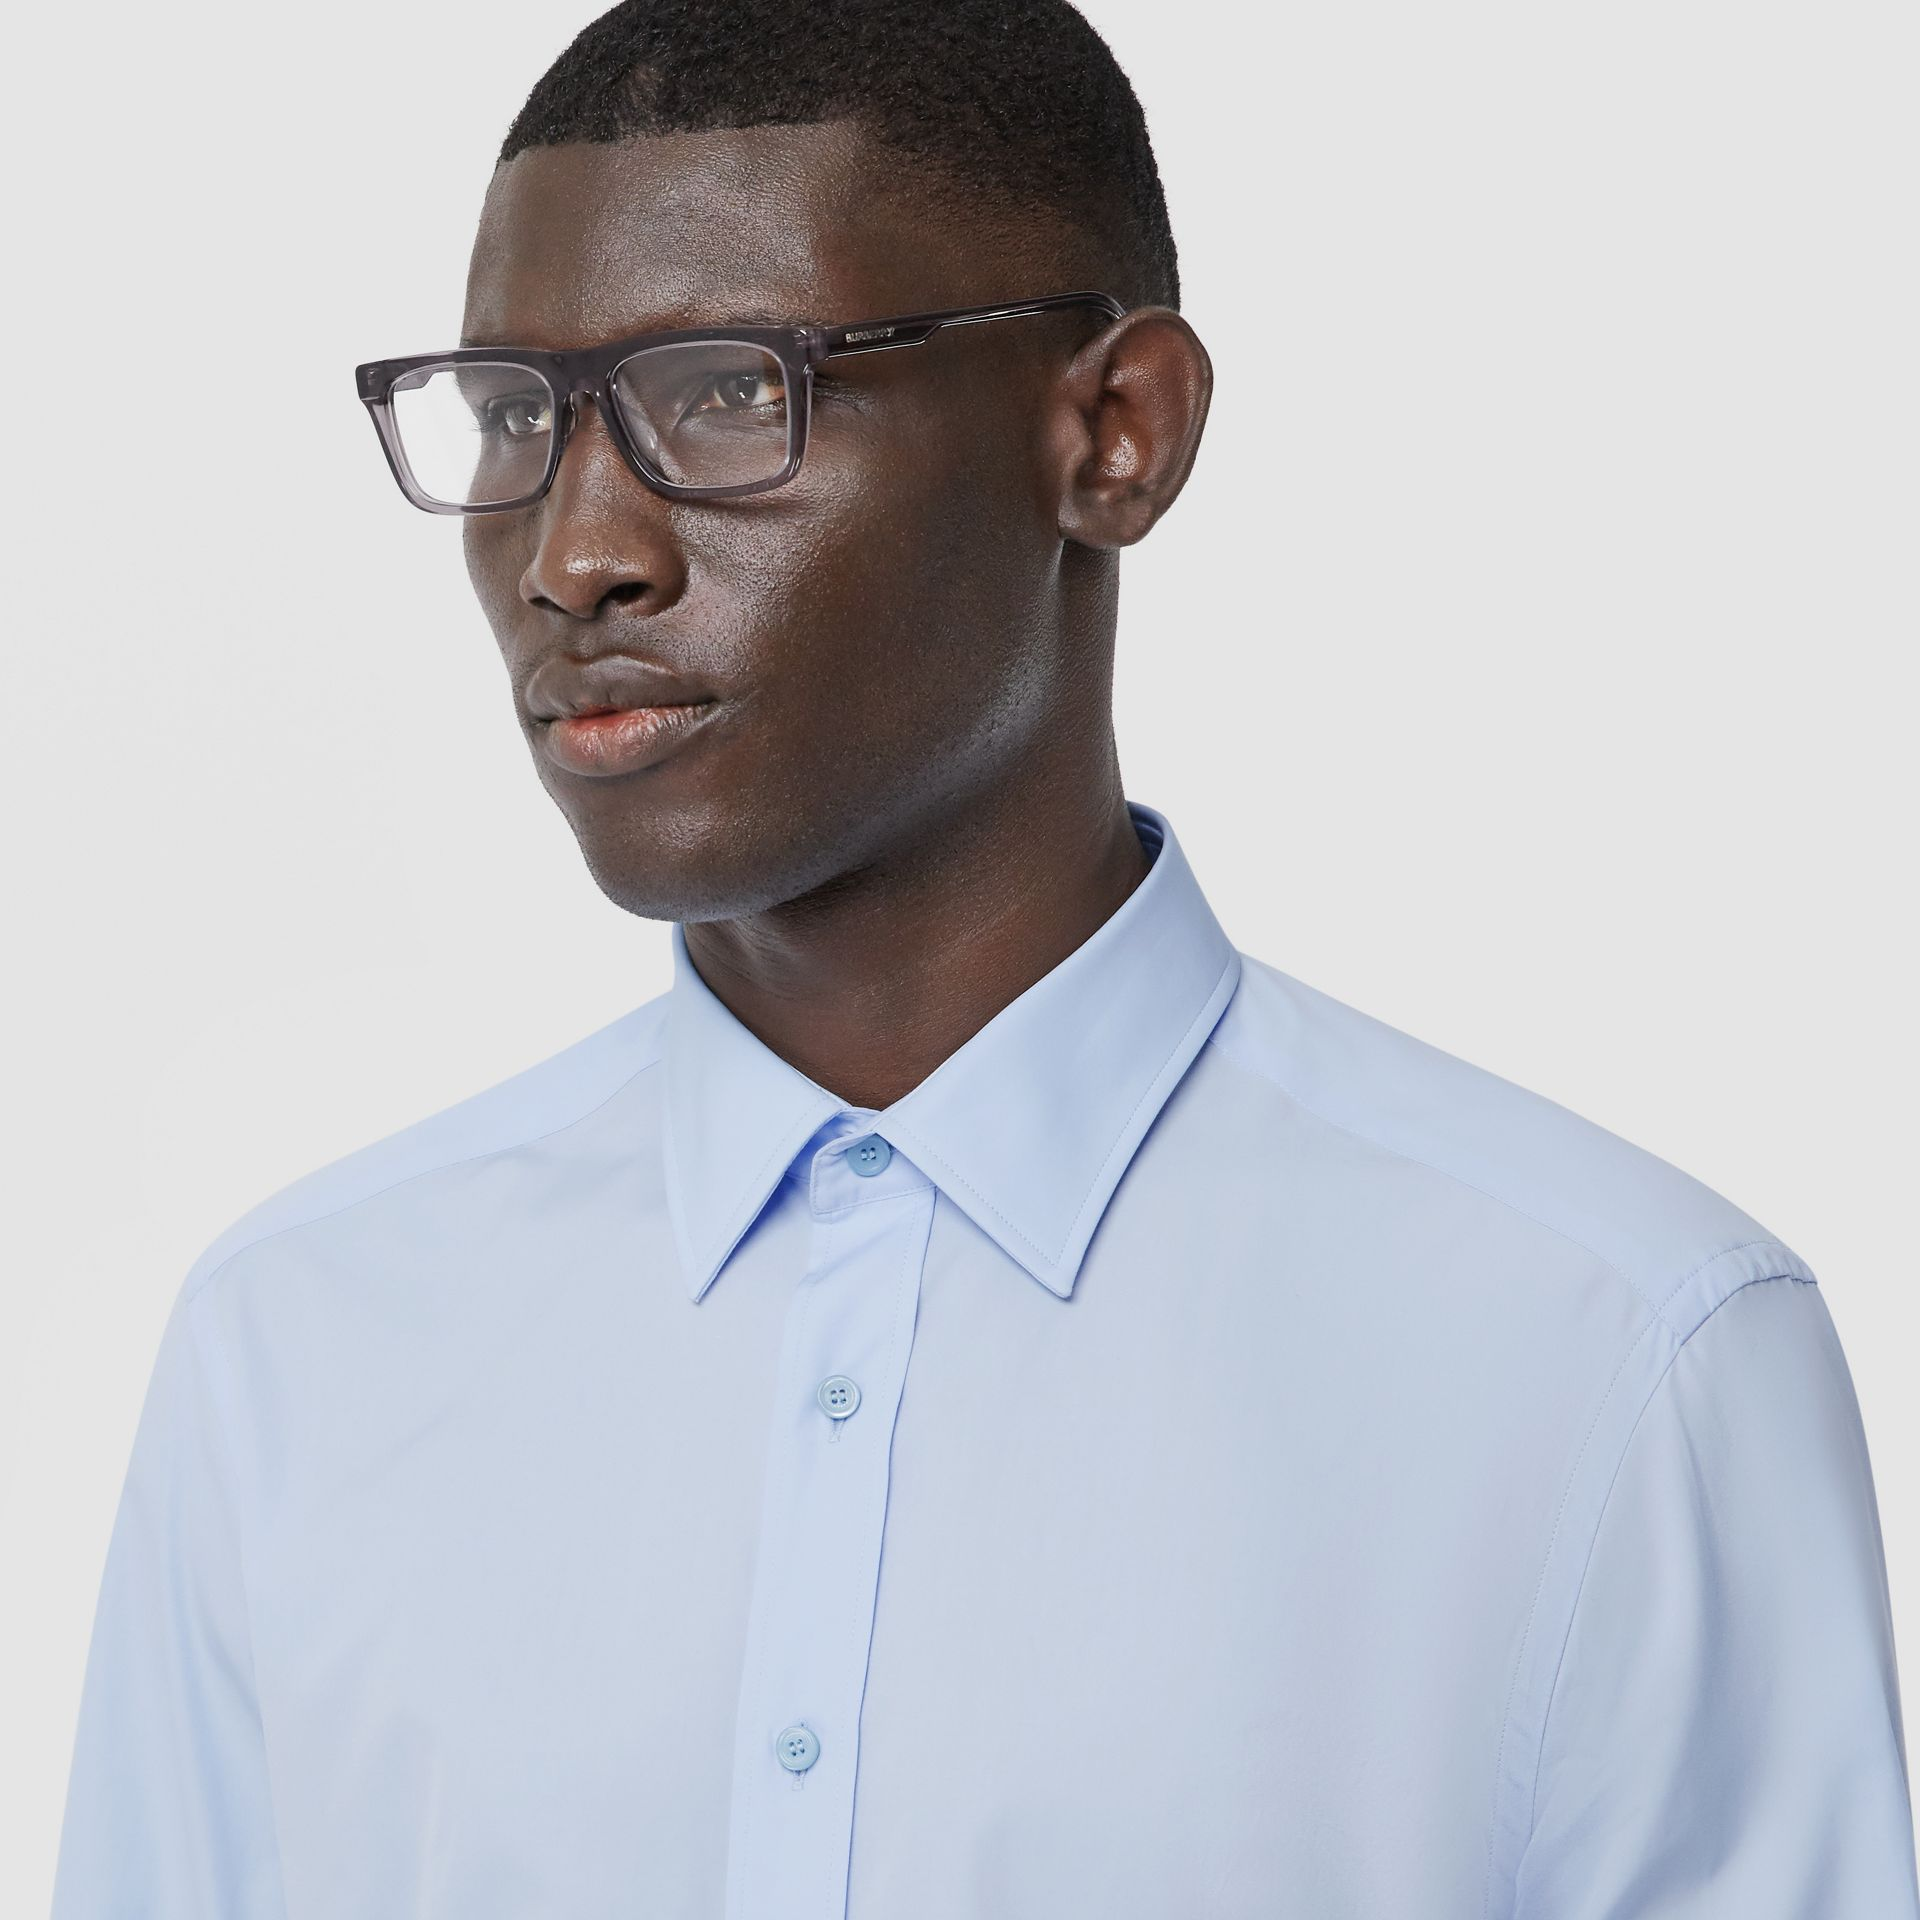 Classic Fit Monogram Motif Cotton Poplin Shirt in Pale Blue - Men | Burberry - gallery image 1